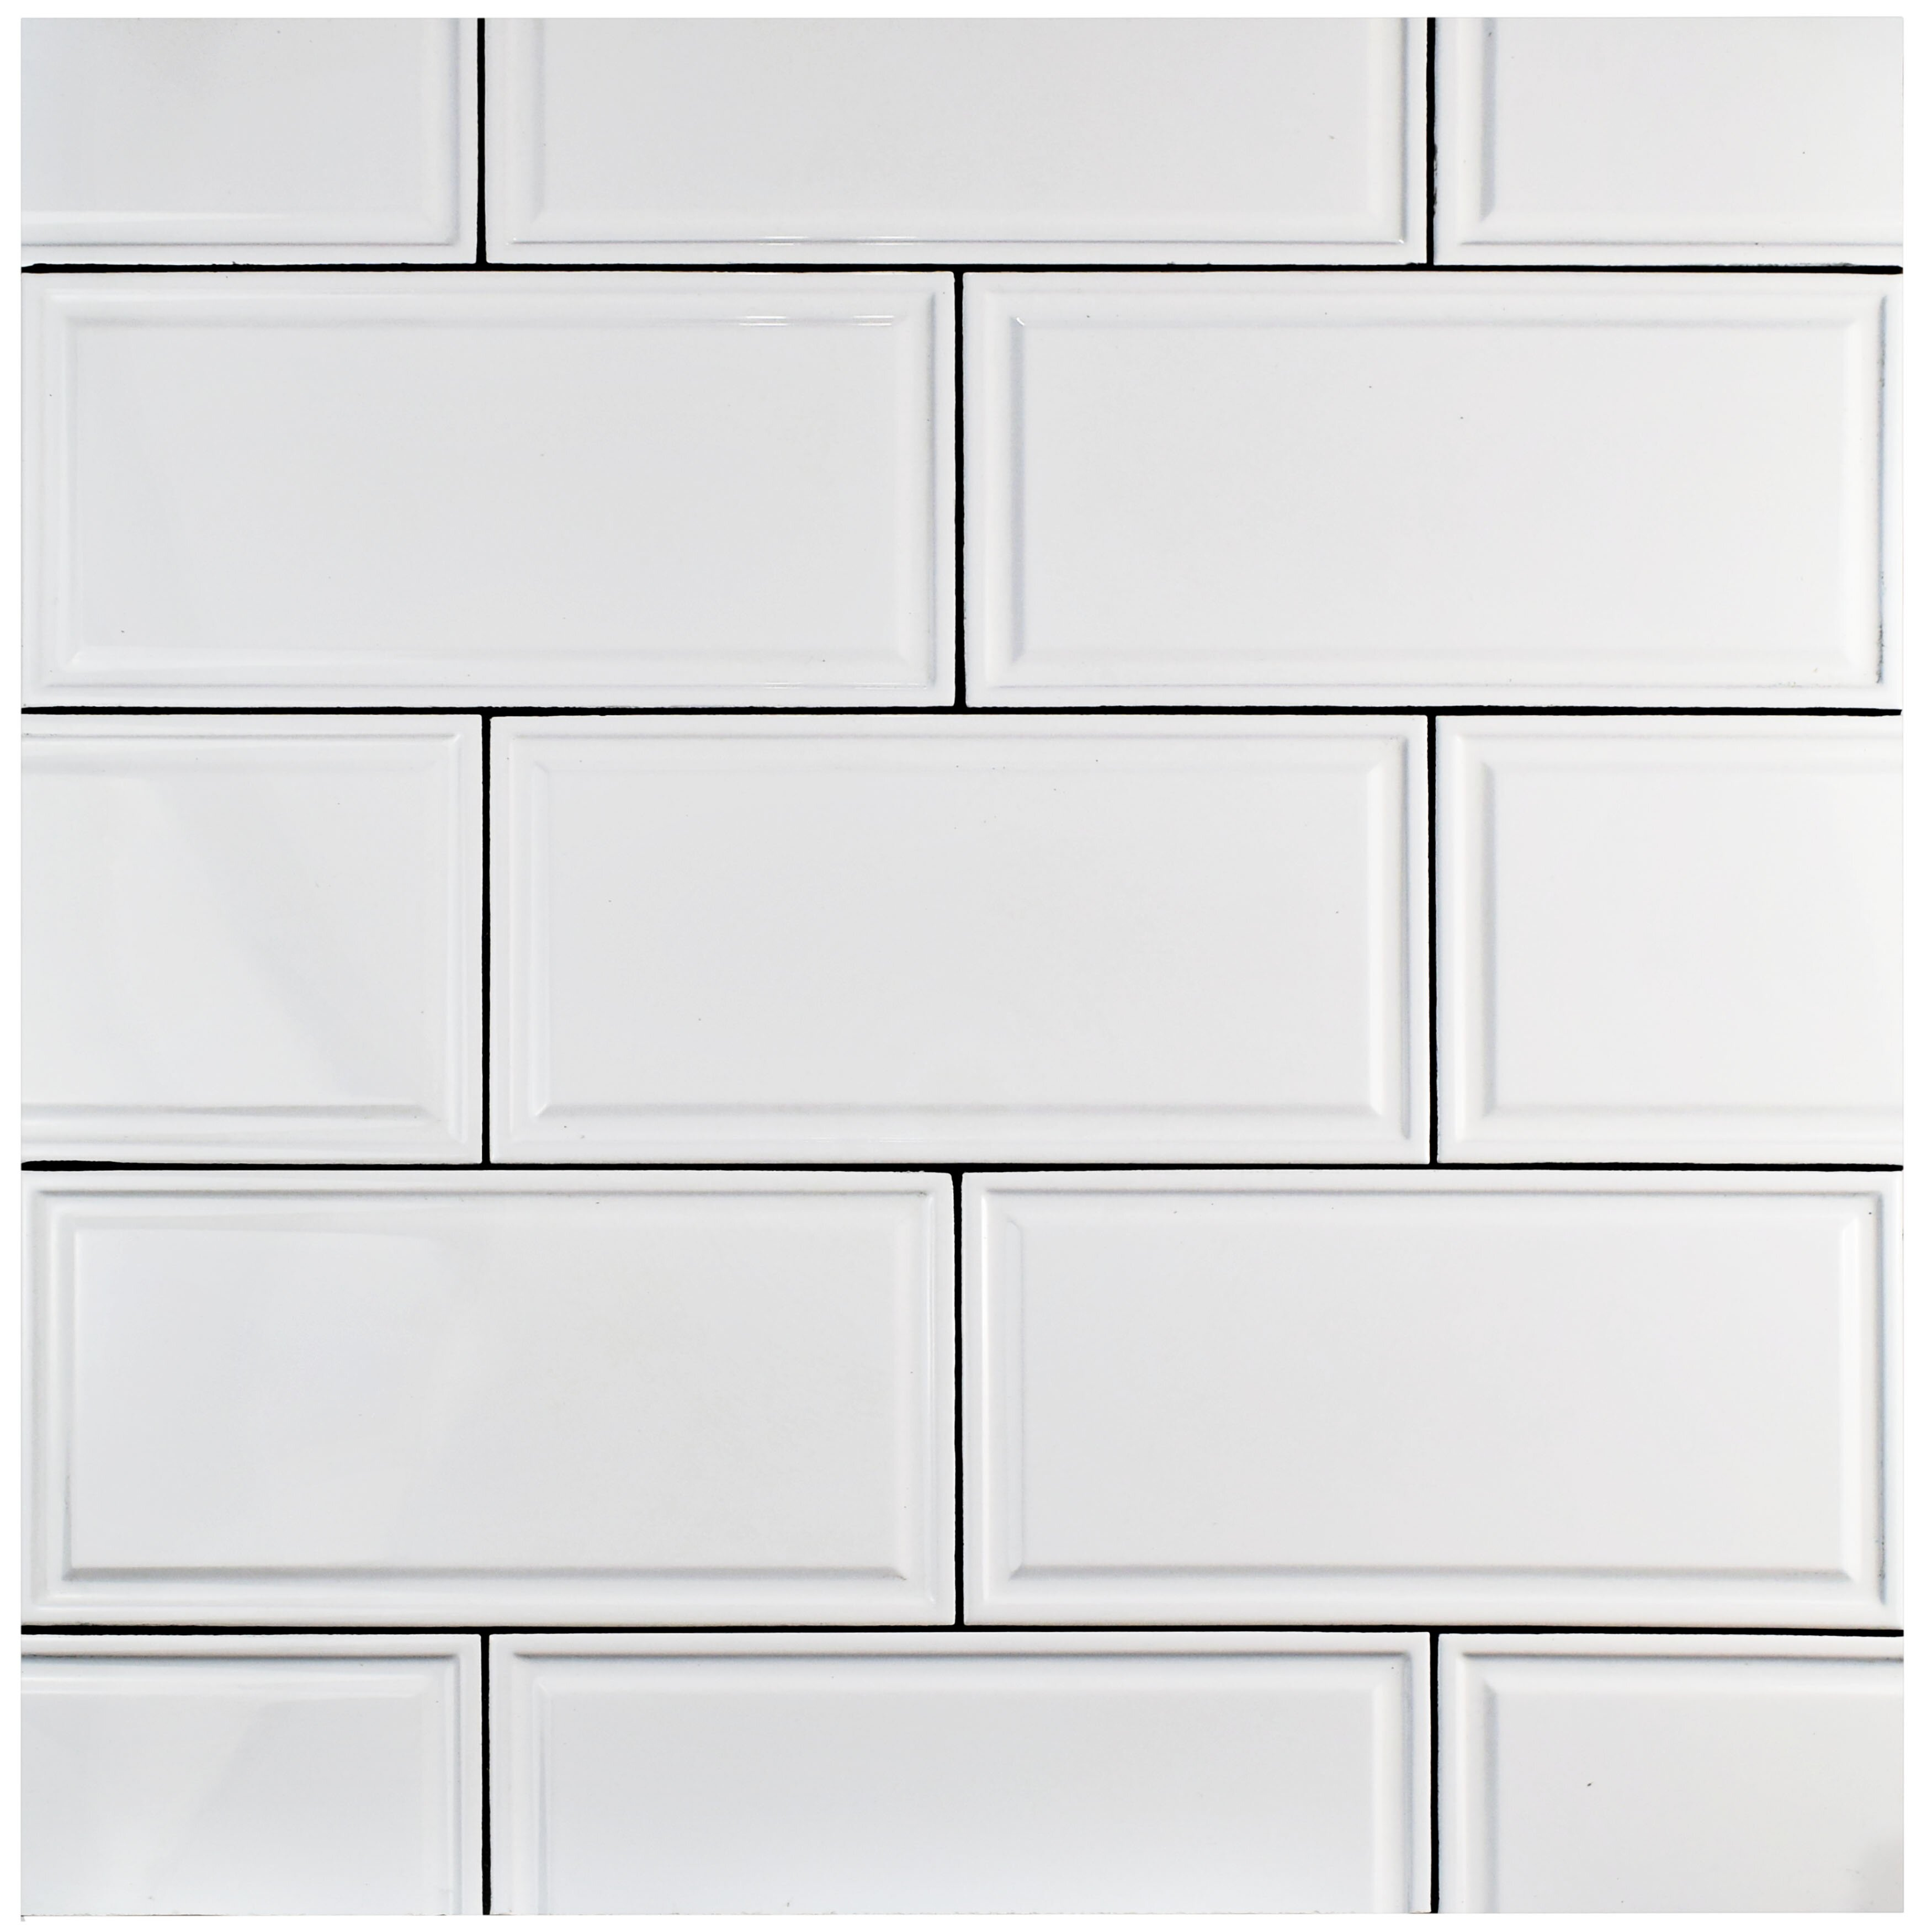 Elitetile Linio 6 X 12 Ceramic Wall Tile In White Reviews Wayfair